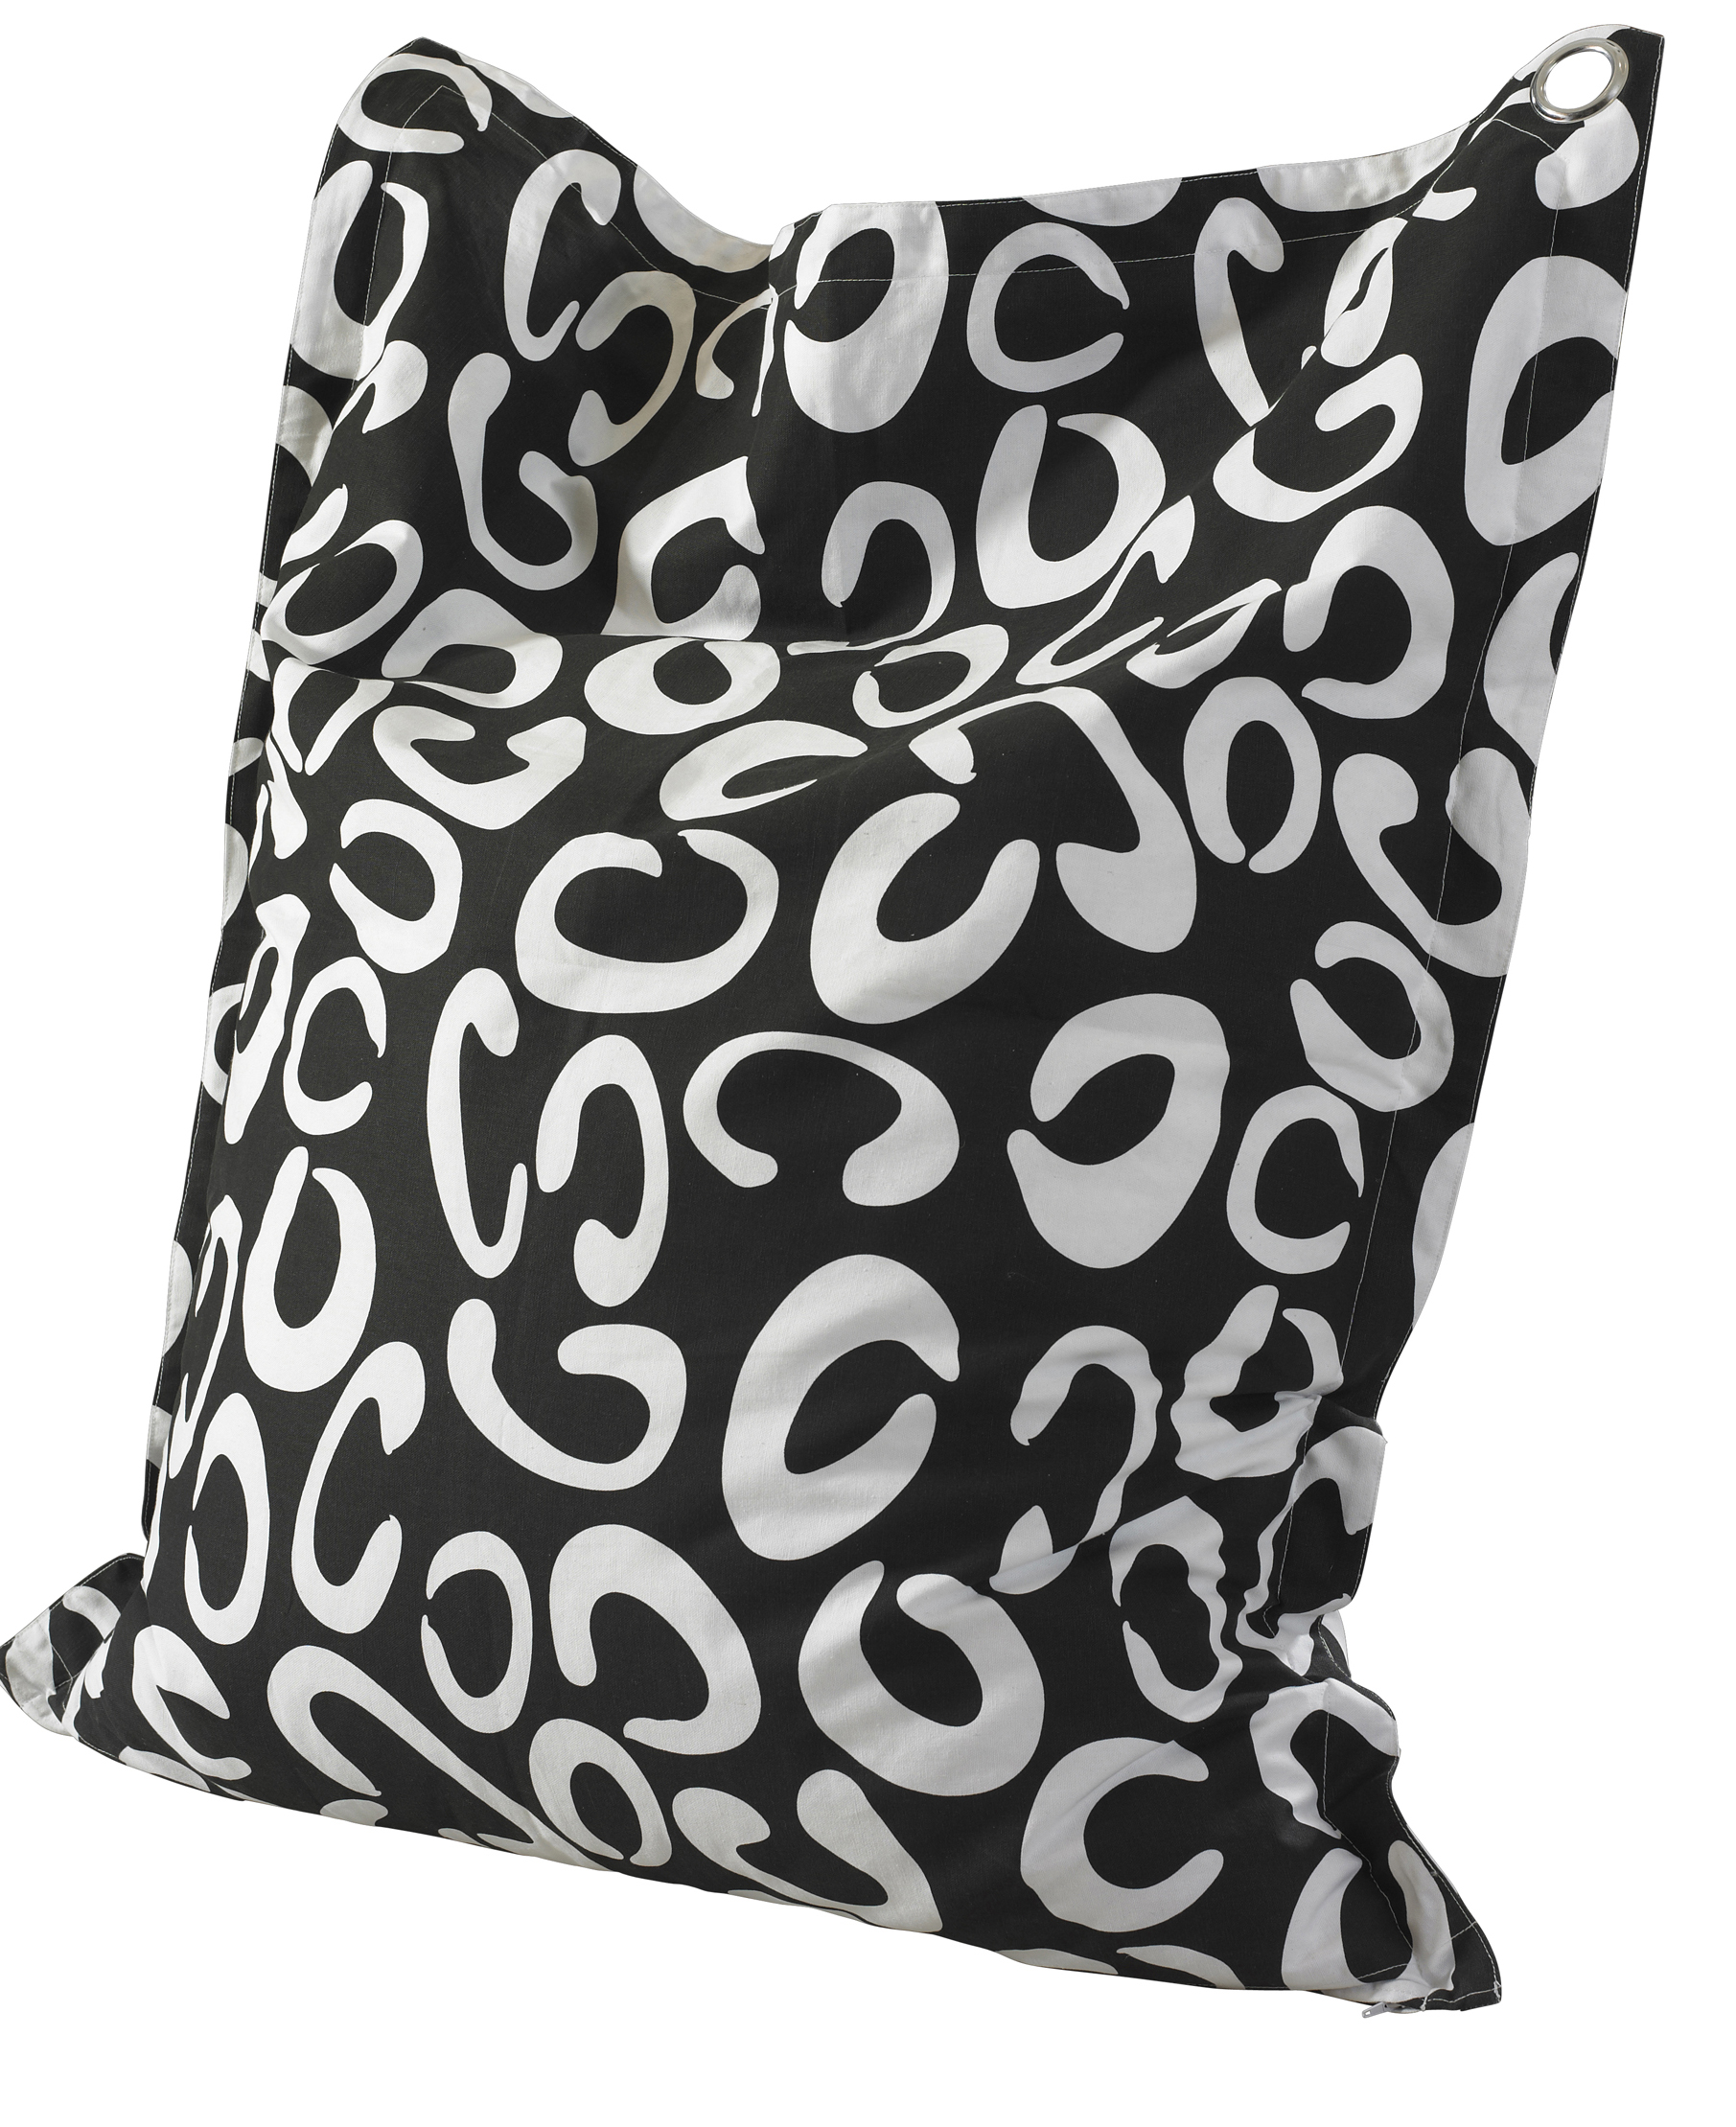 Black & White Anywhere Lounger 199-B012